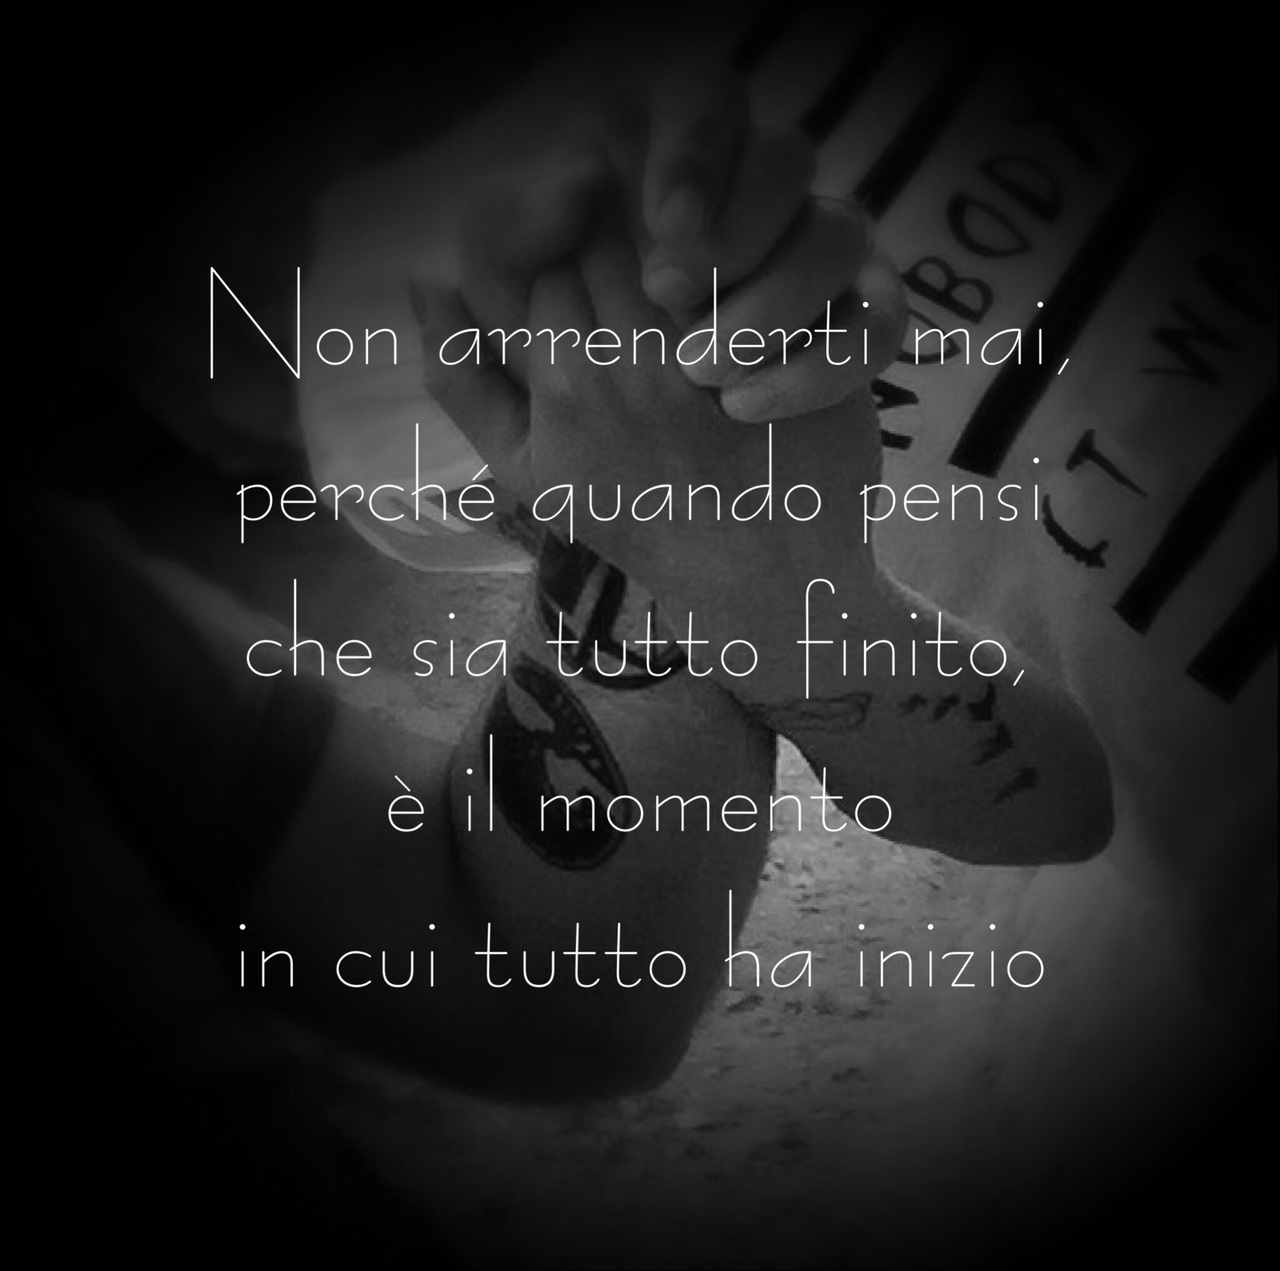 211 Images About Citazioni On We Heart It See More About